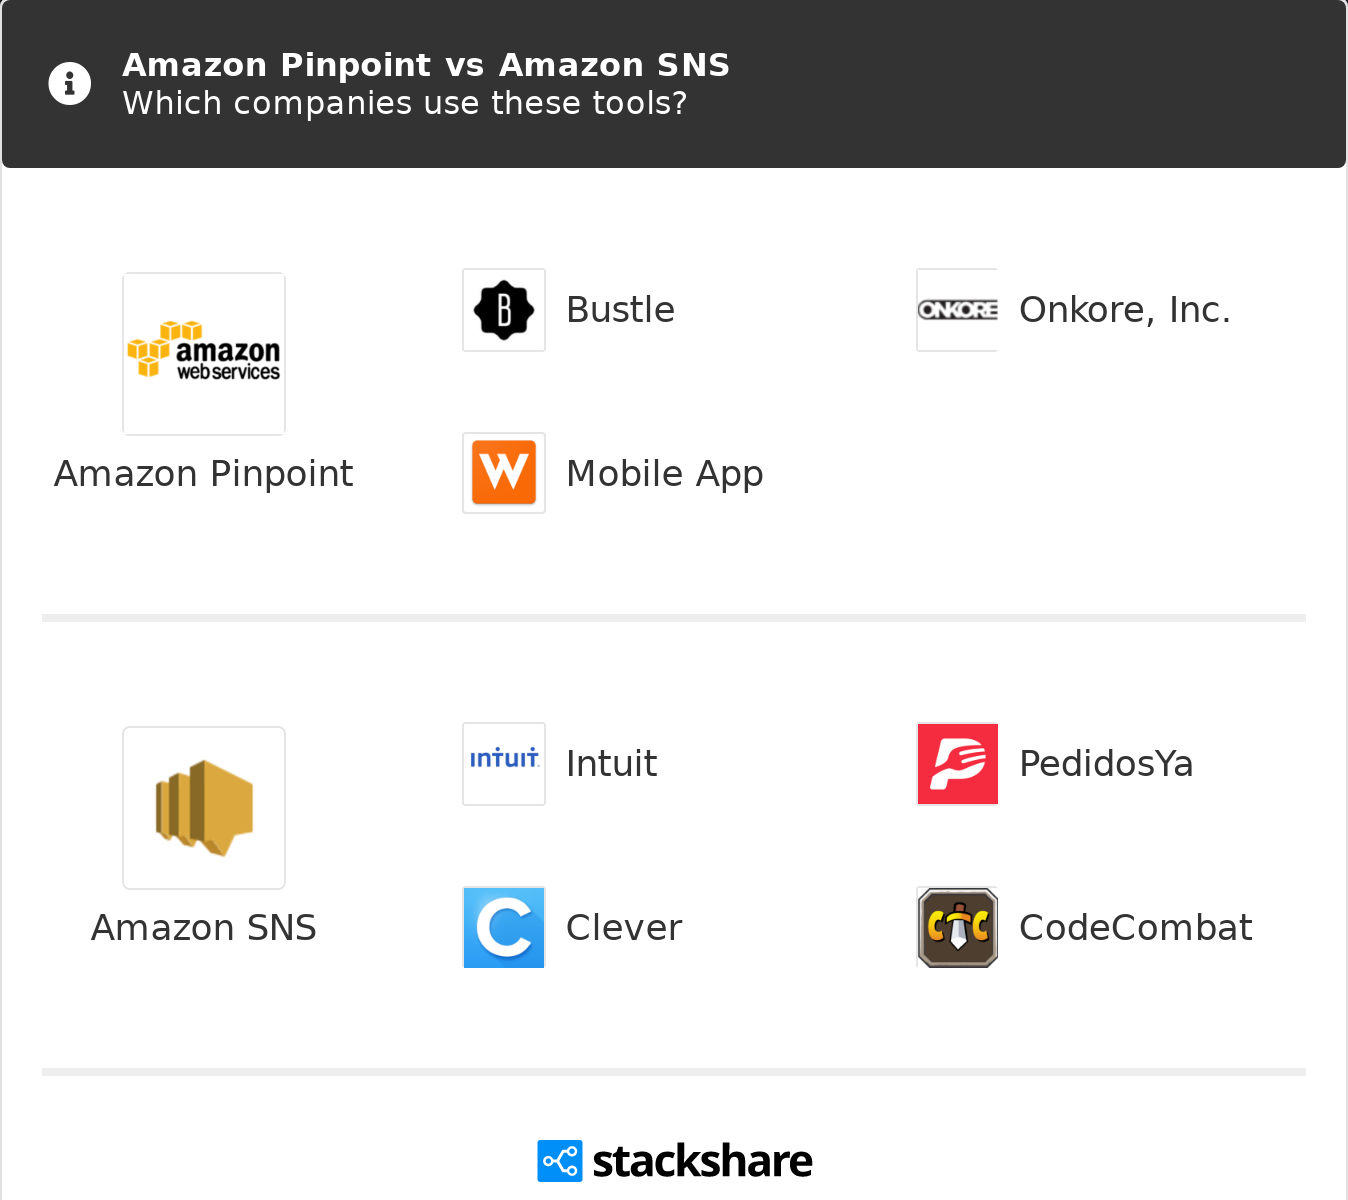 Amazon Pinpoint vs Amazon SNS | What are the differences?